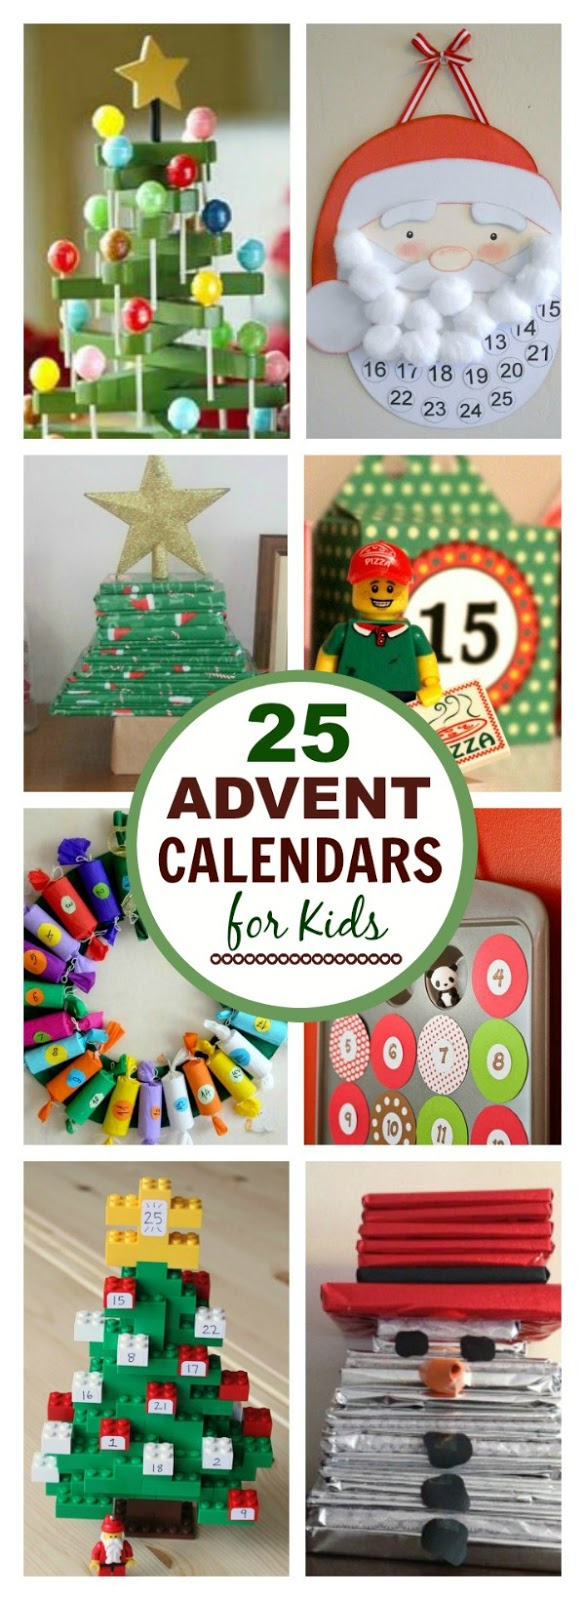 Diy Childrens Advent Calendar : Christmas advent calendars for kids growing a jeweled rose